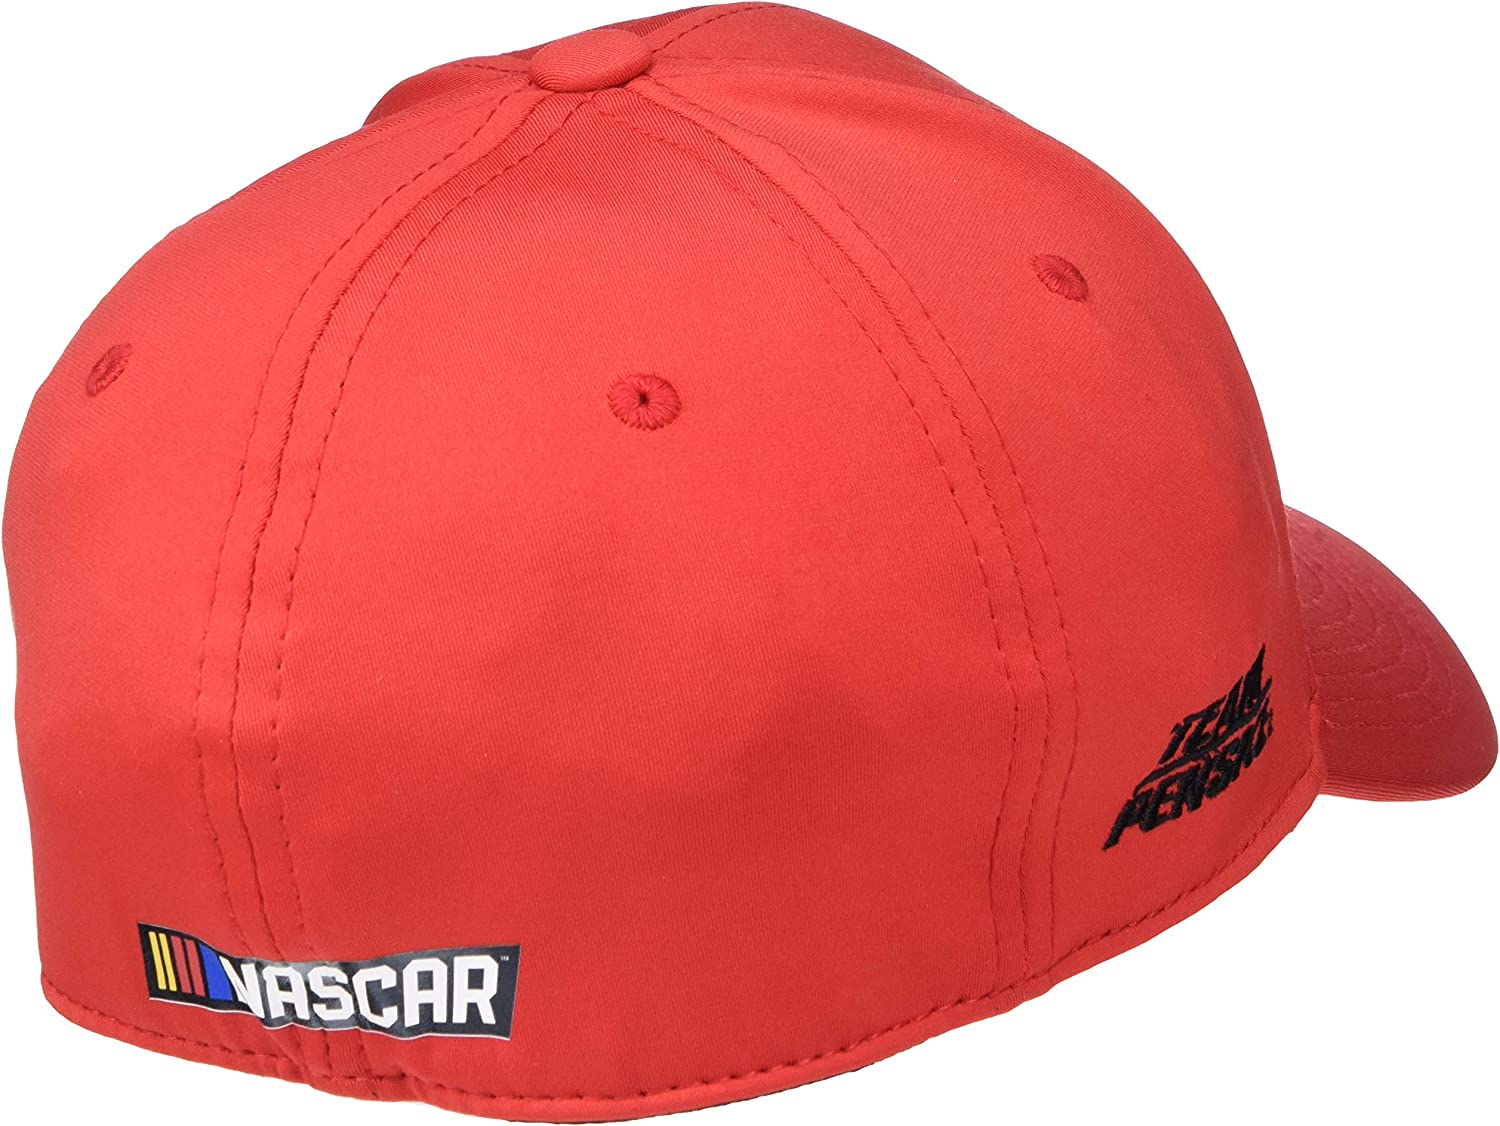 NASCAR Officially Licensed Favorite Driver Arch Premium Onefit Hat